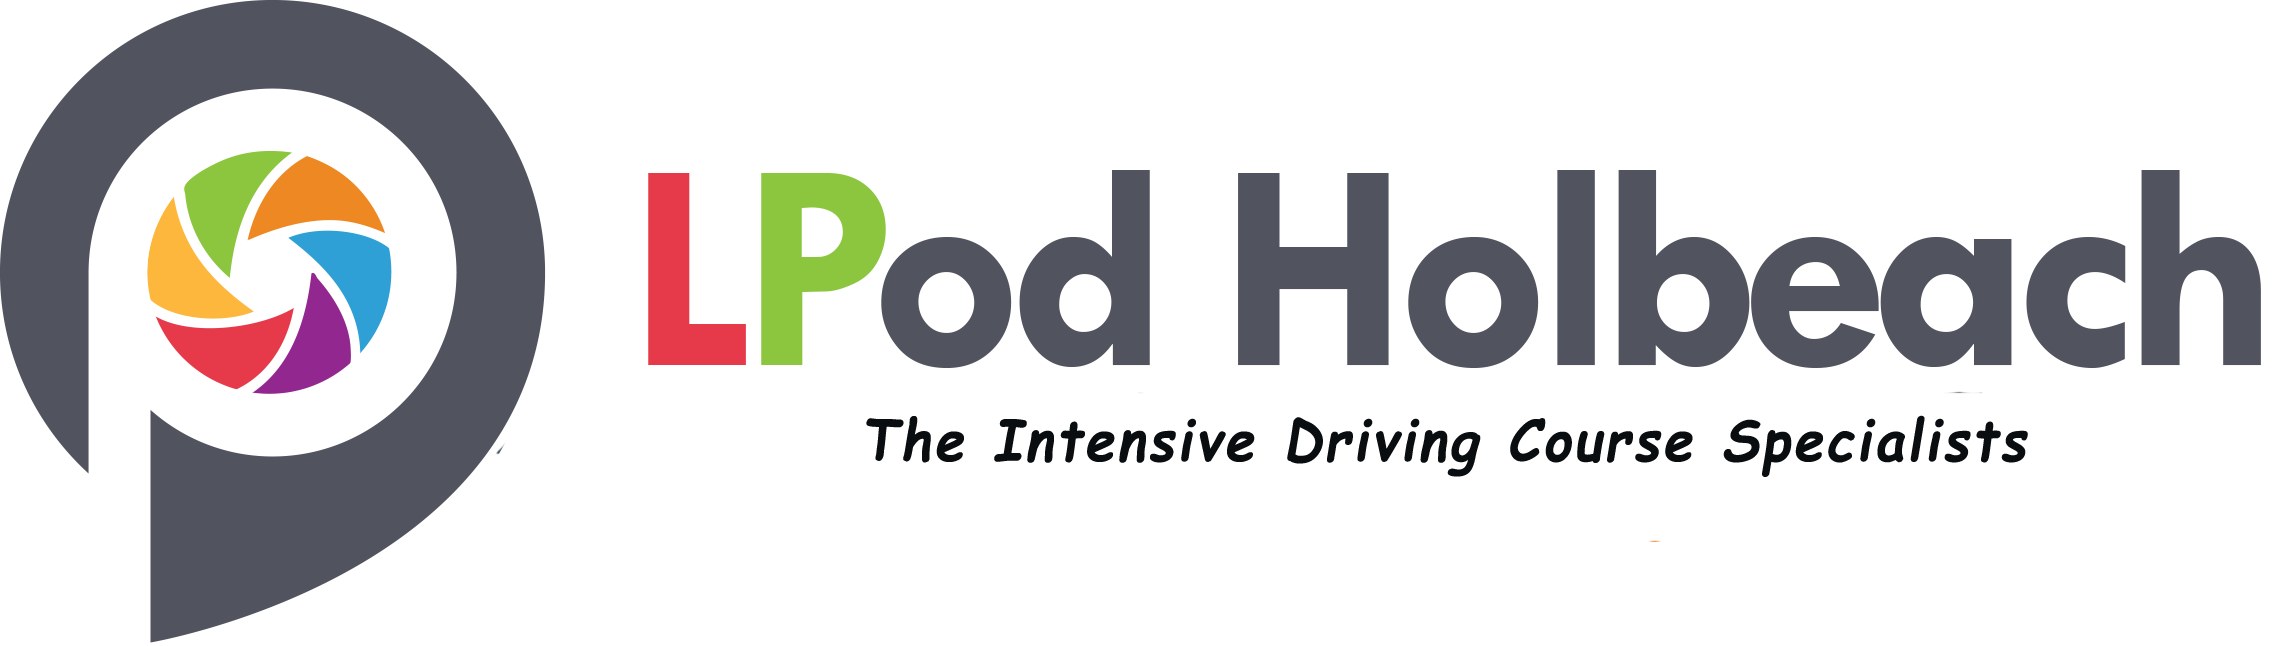 intensive driving courses Holbeach